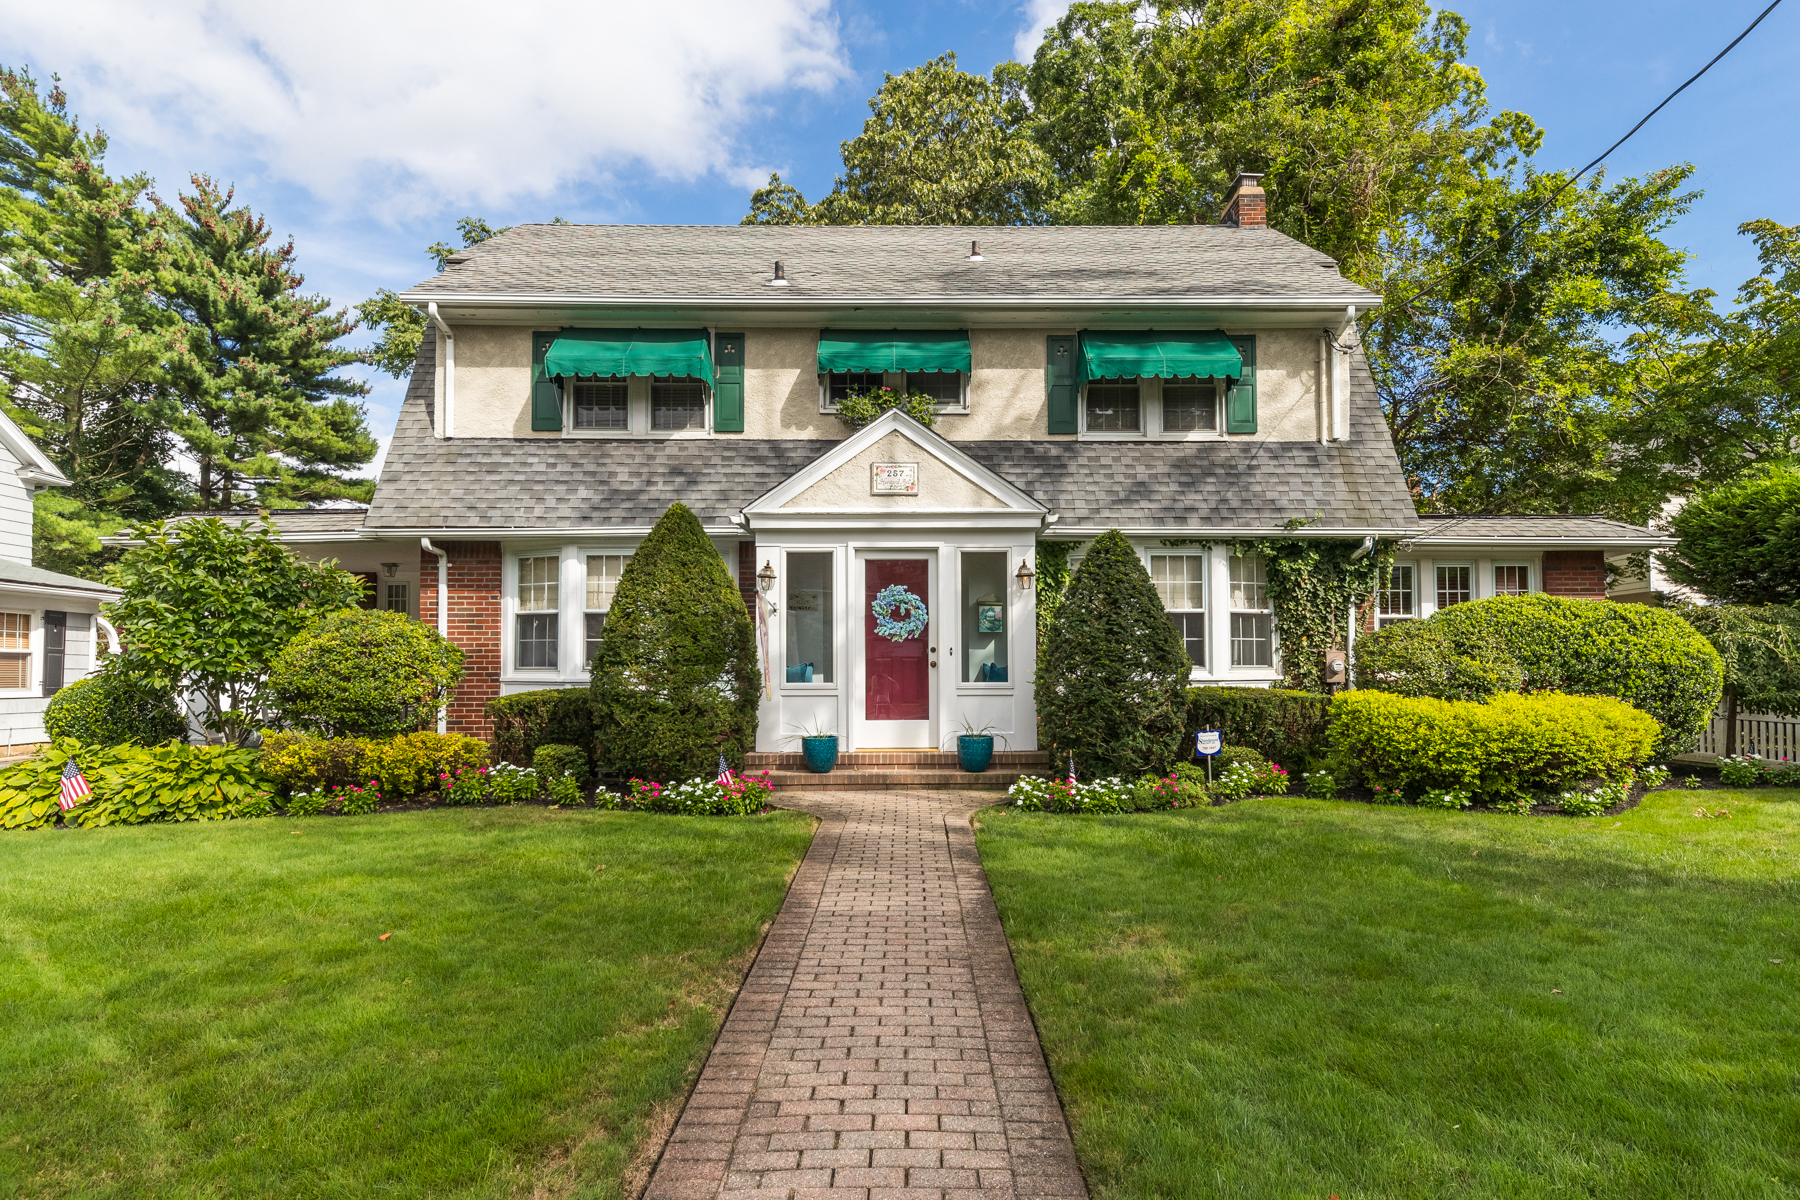 Single Family Homes for Sale at Rockville Centre 257 Harvard Ave Rockville Centre, New York 11570 United States